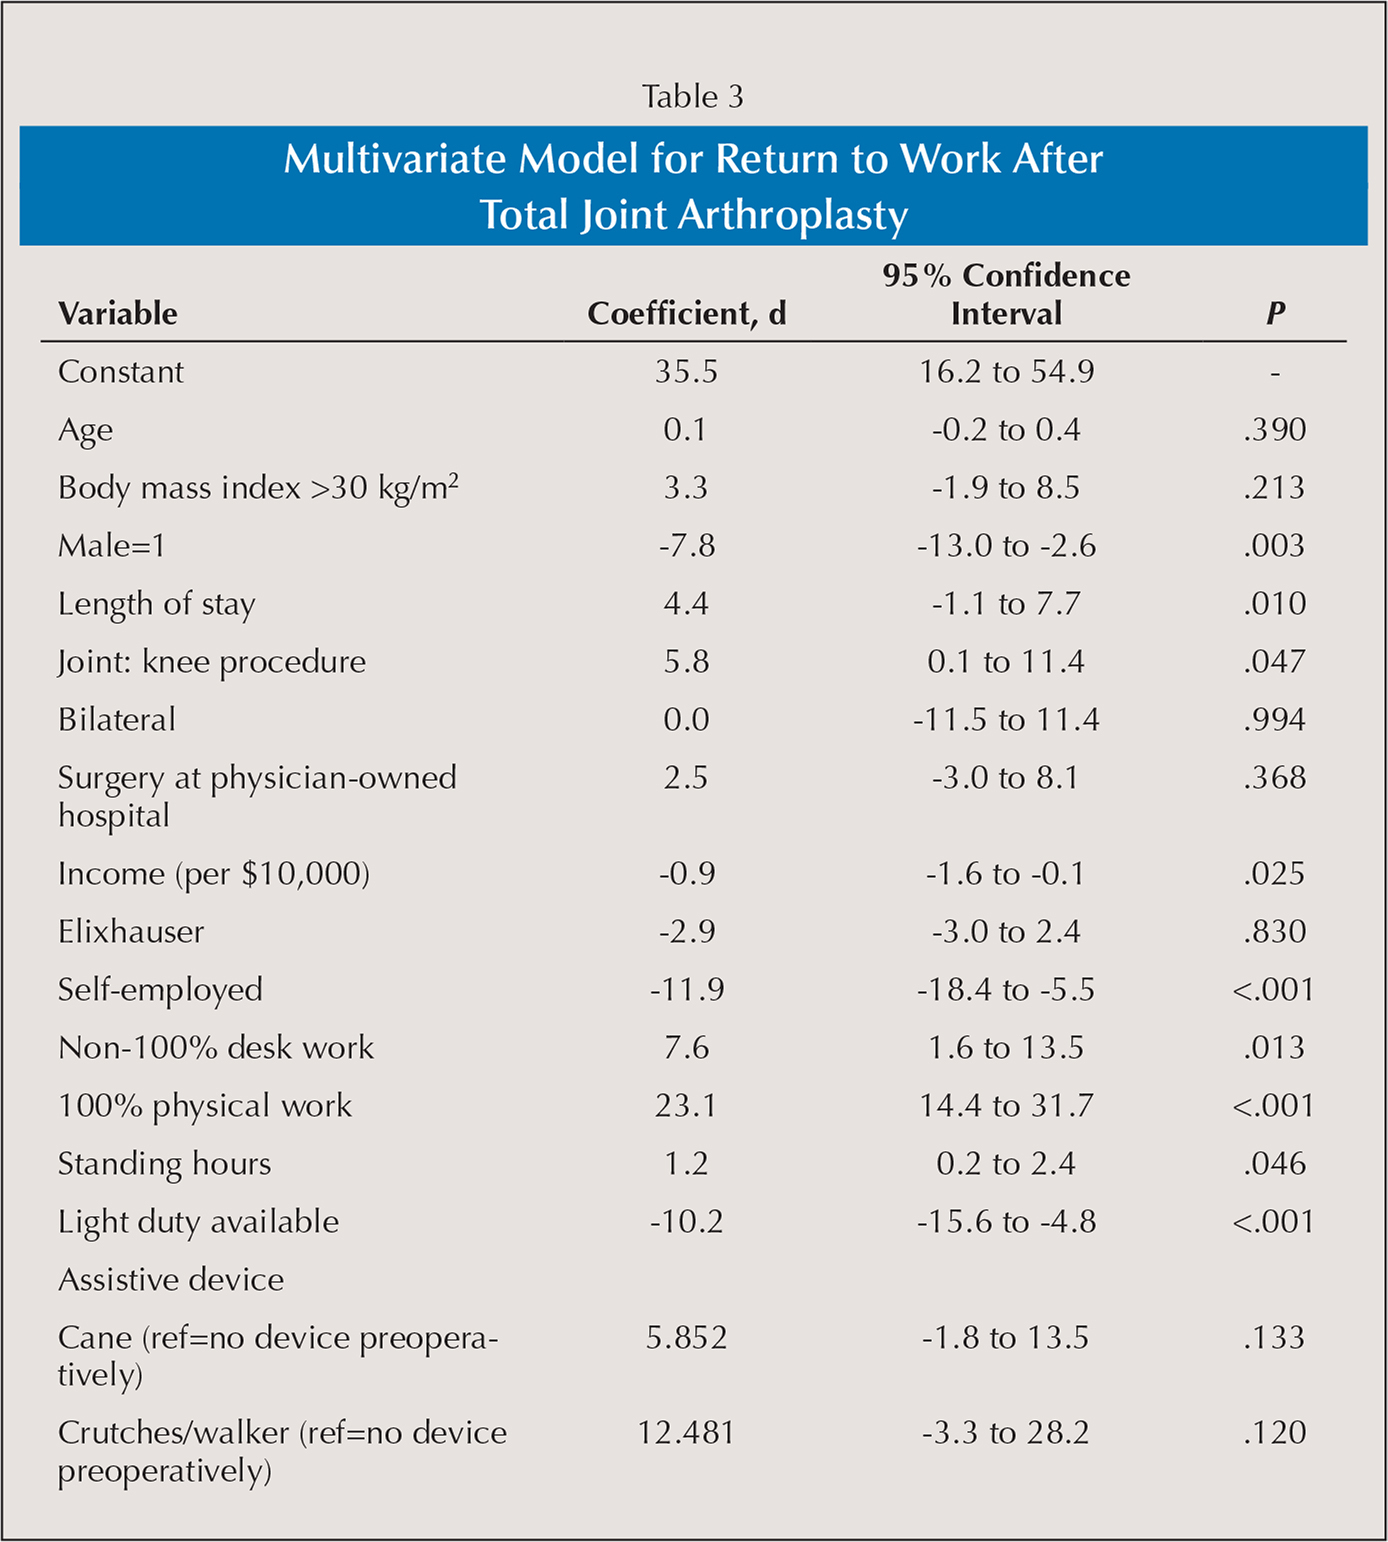 Multivariate Model for Return to Work After Total Joint Arthroplasty